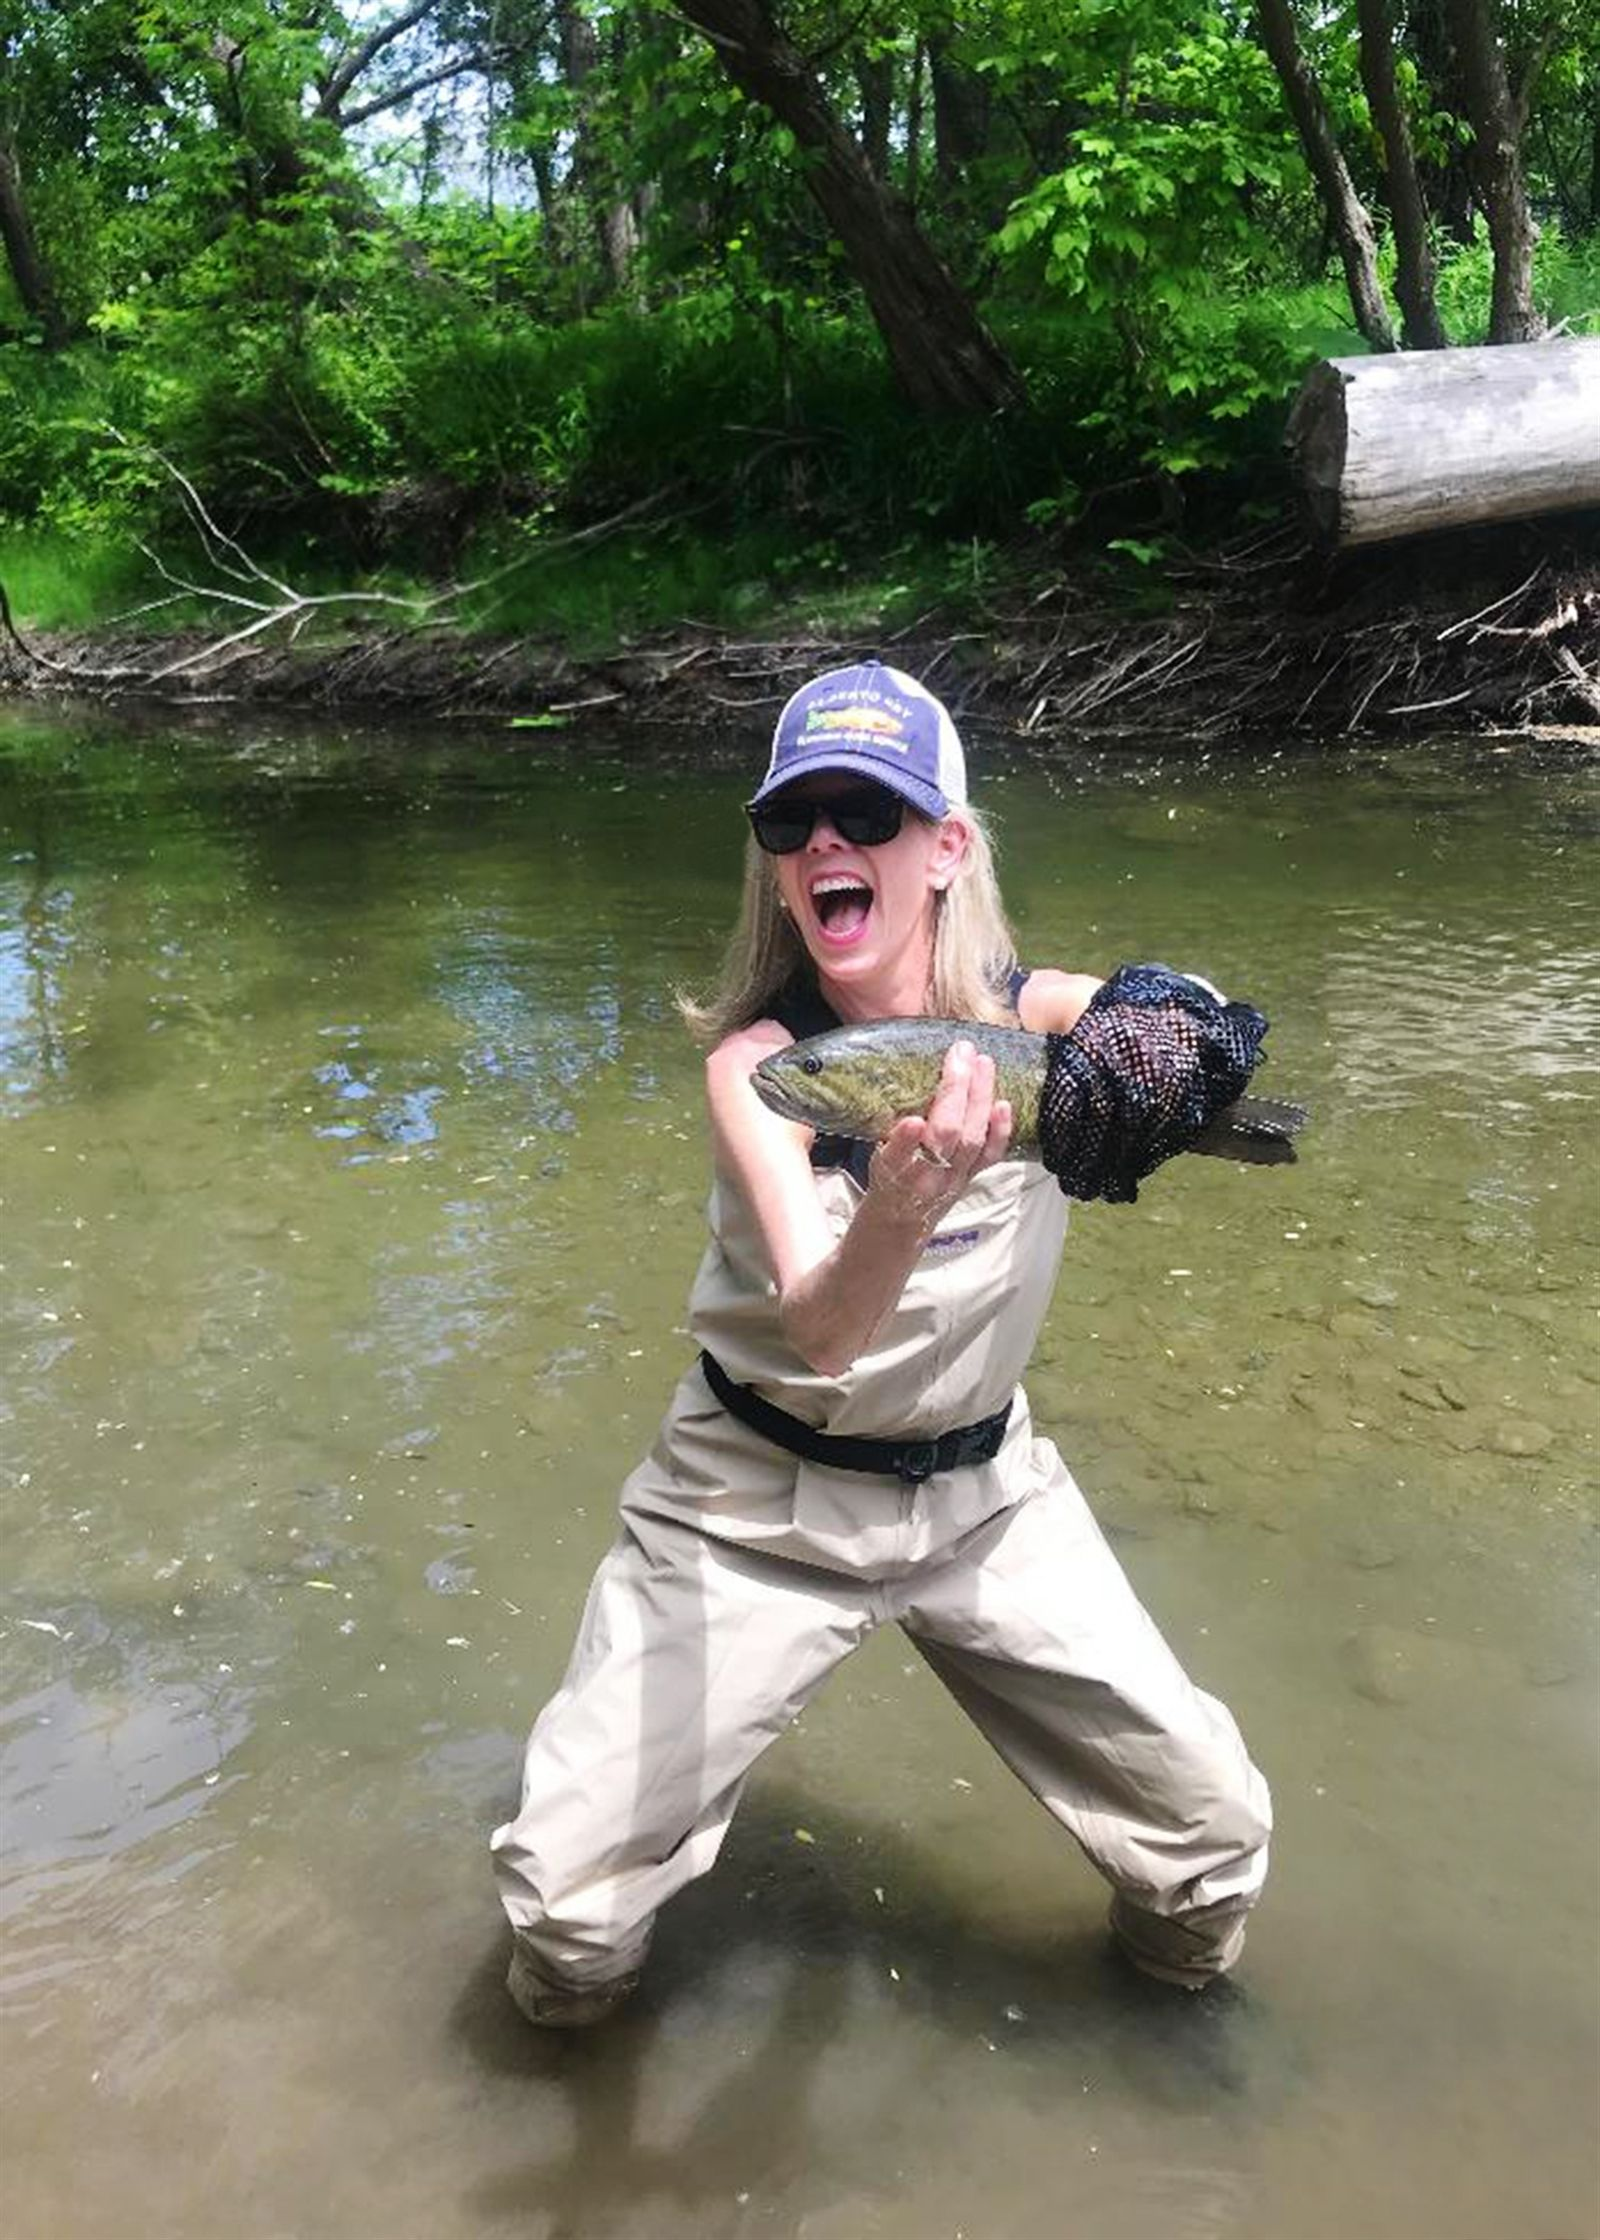 Missy Cleary on June 9 at Candaway Creek. Caught with grandfather's bamboo fly rod from somewhere between the 1930s and 1960s.